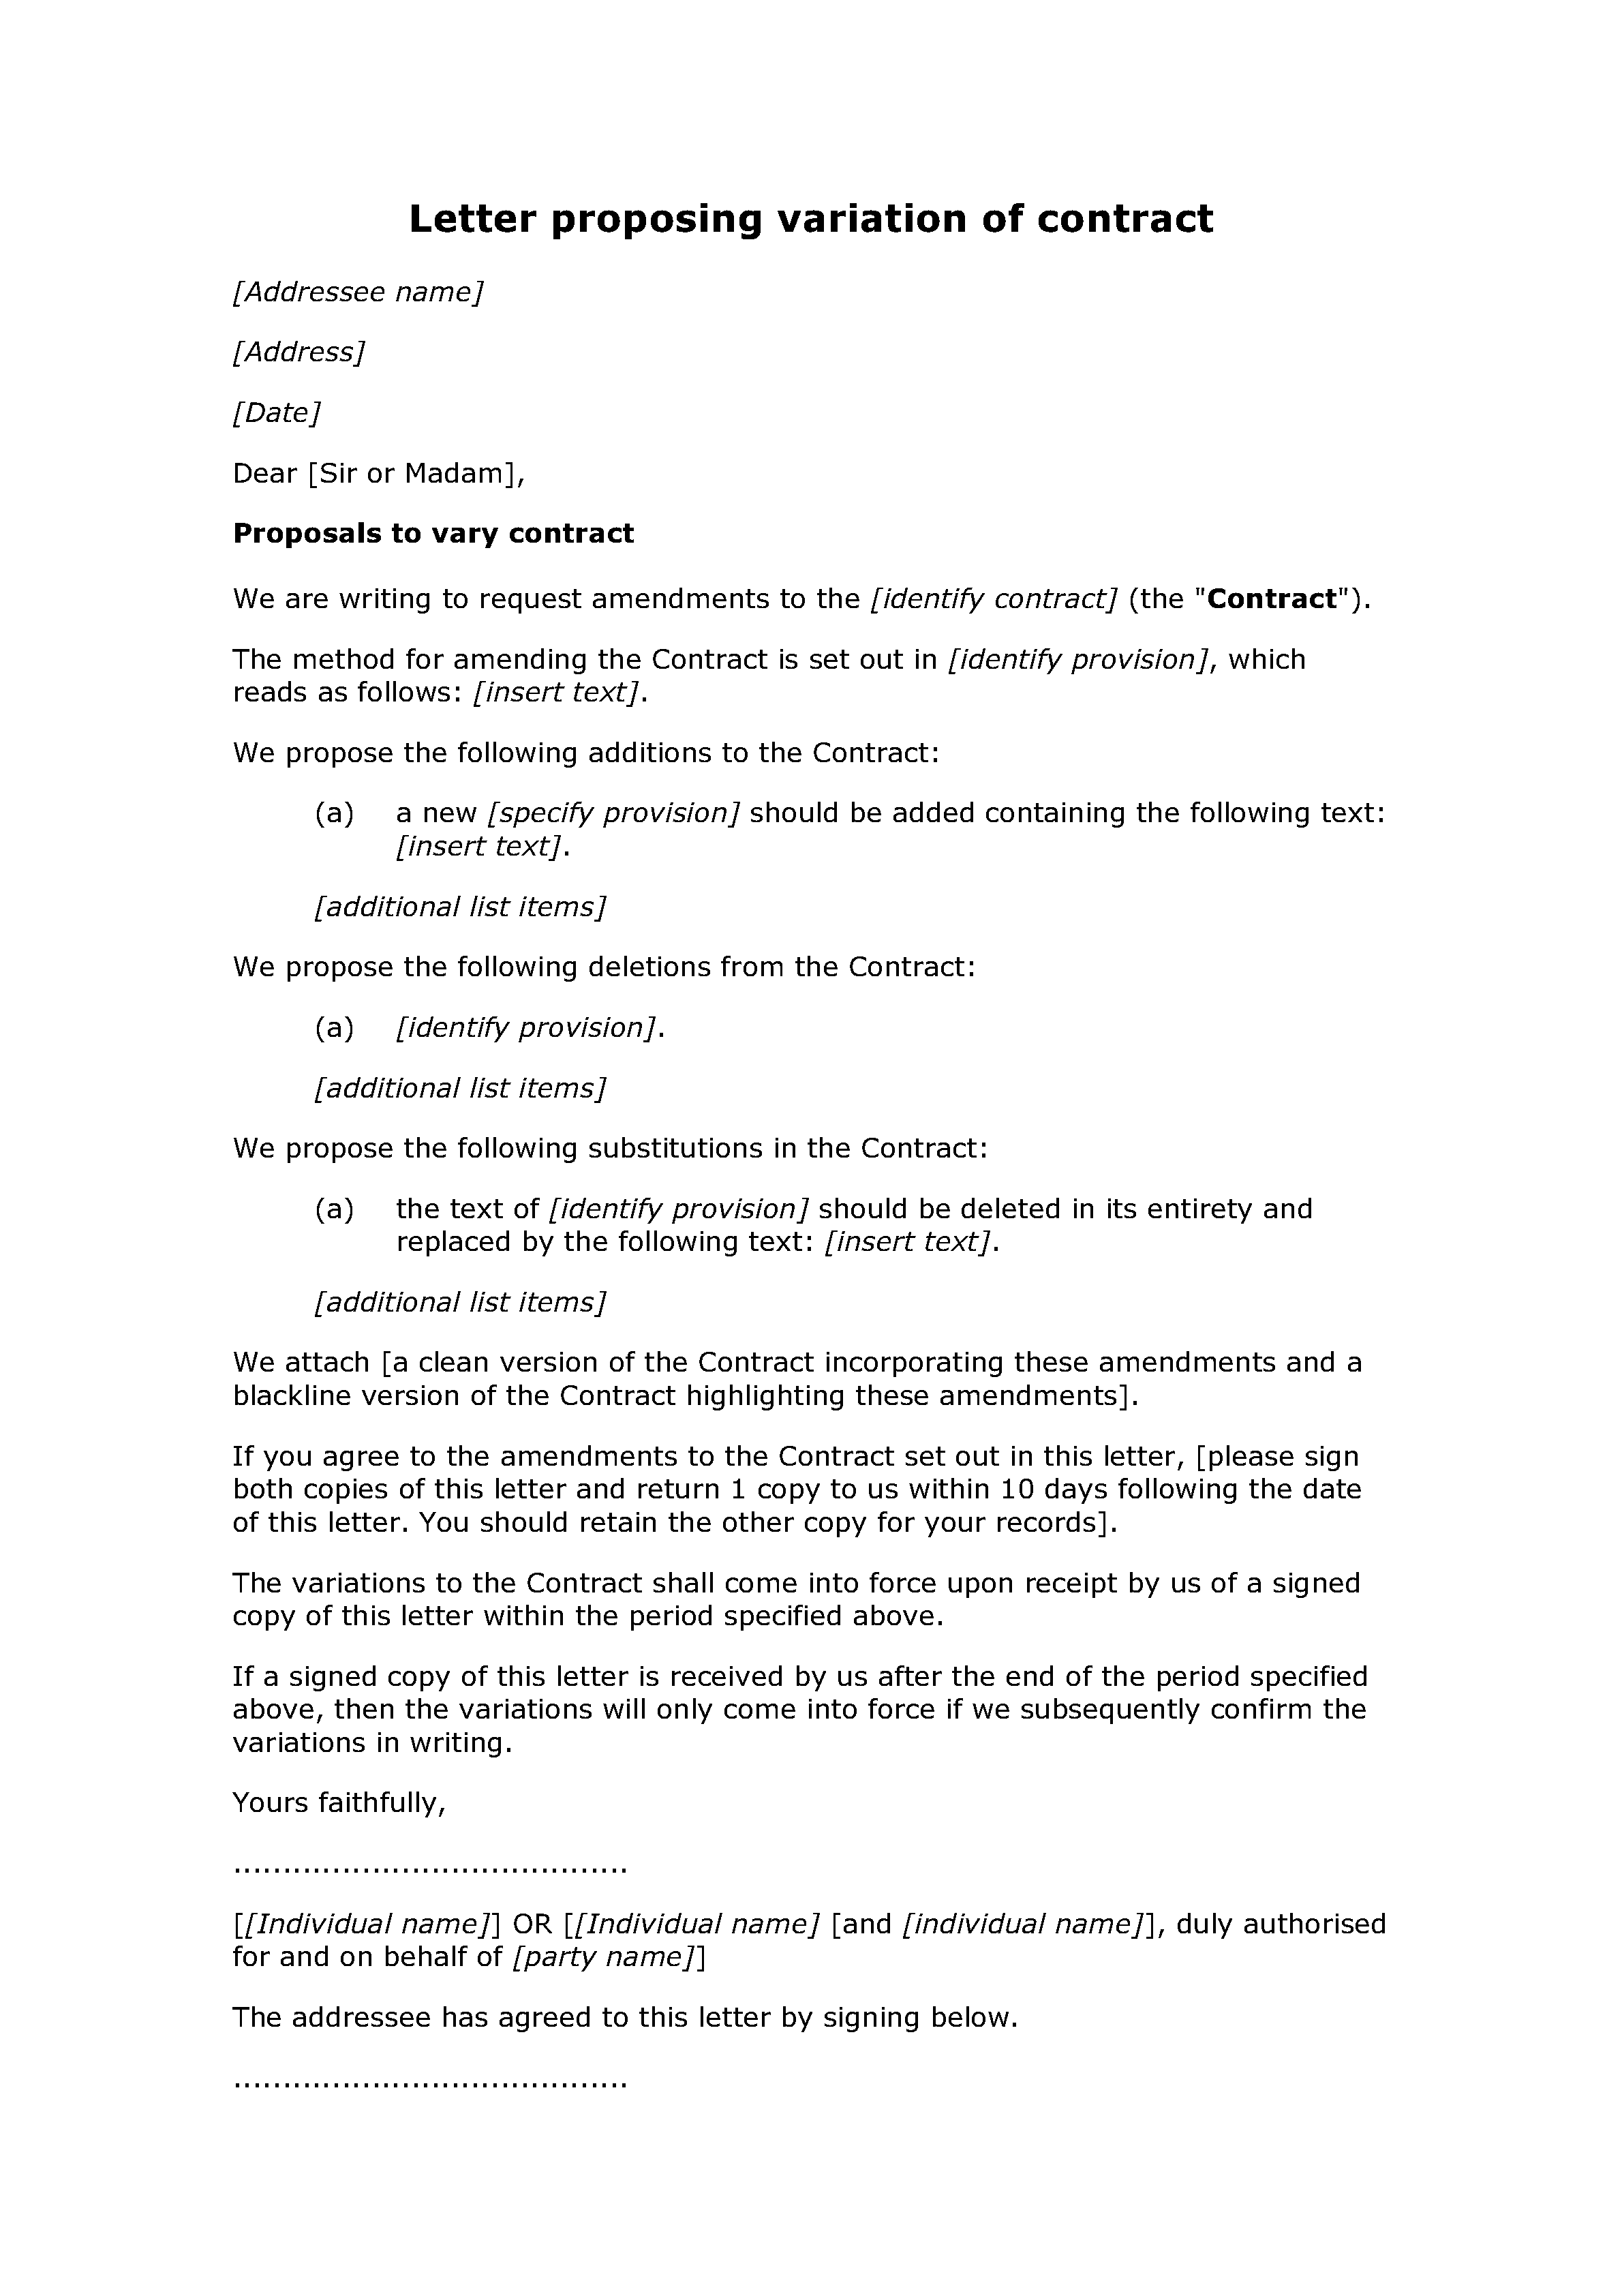 Letter proposing variation of contract docular letter proposing variation of contract document preview spiritdancerdesigns Images